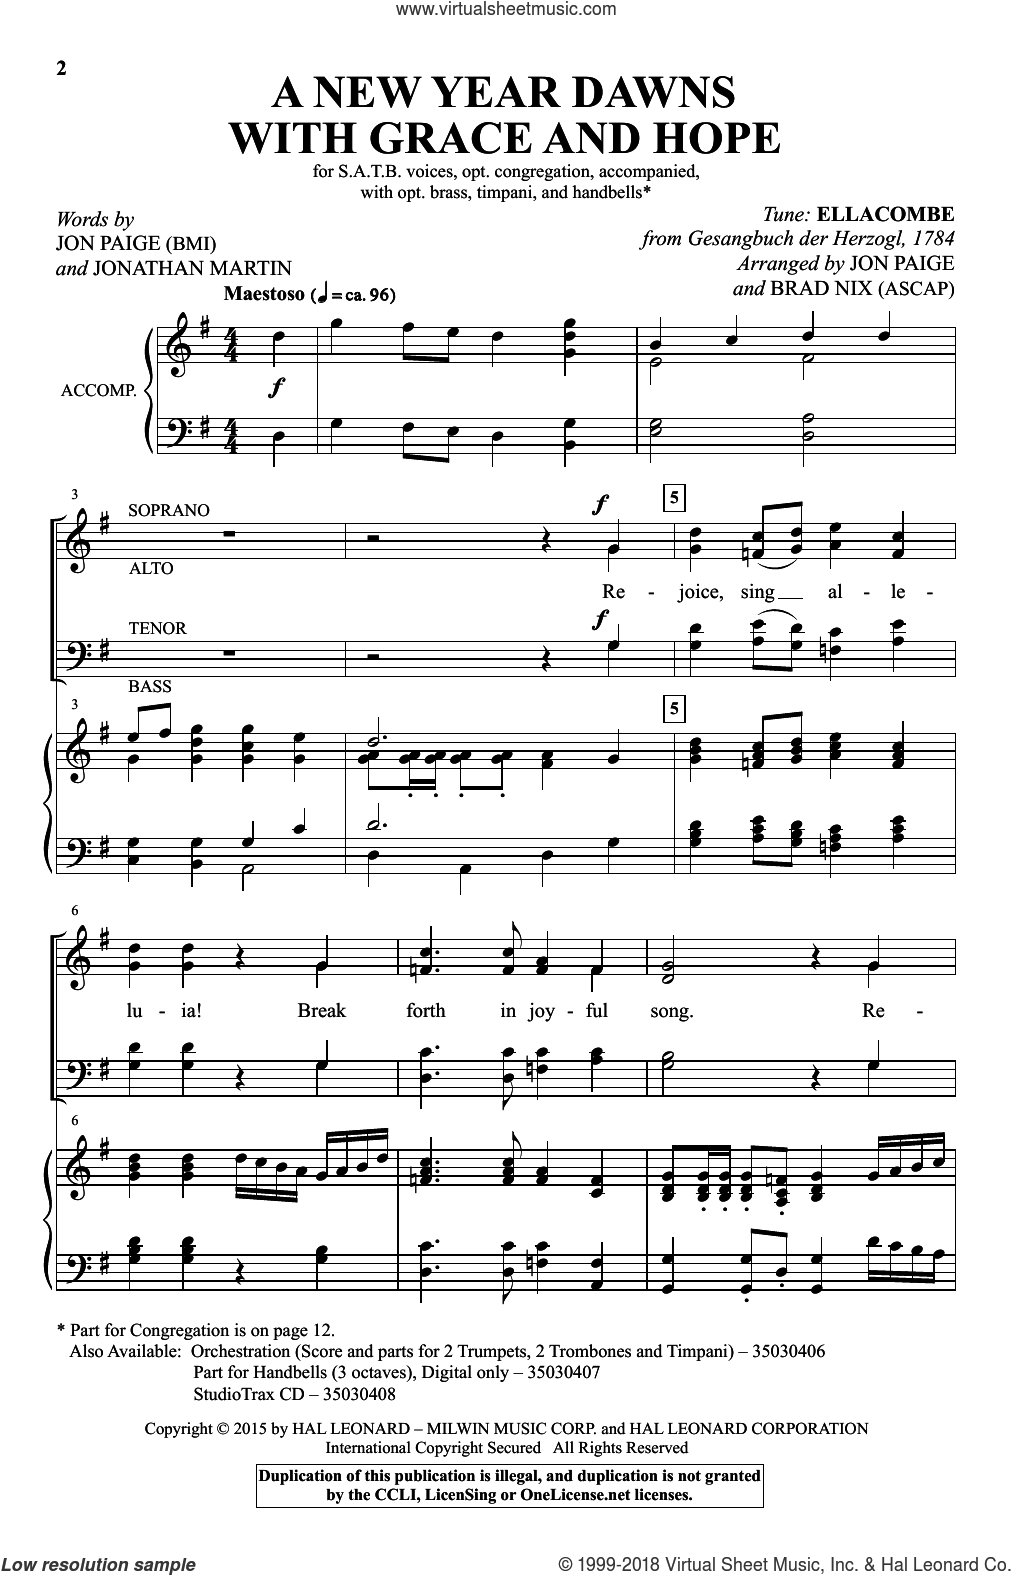 A New Year Dawns With Grace And Hope sheet music for choir and piano by Gesangbuch der Herzogl, Brad Nix, Jon Paige and Jonathan Martin. Score Image Preview.